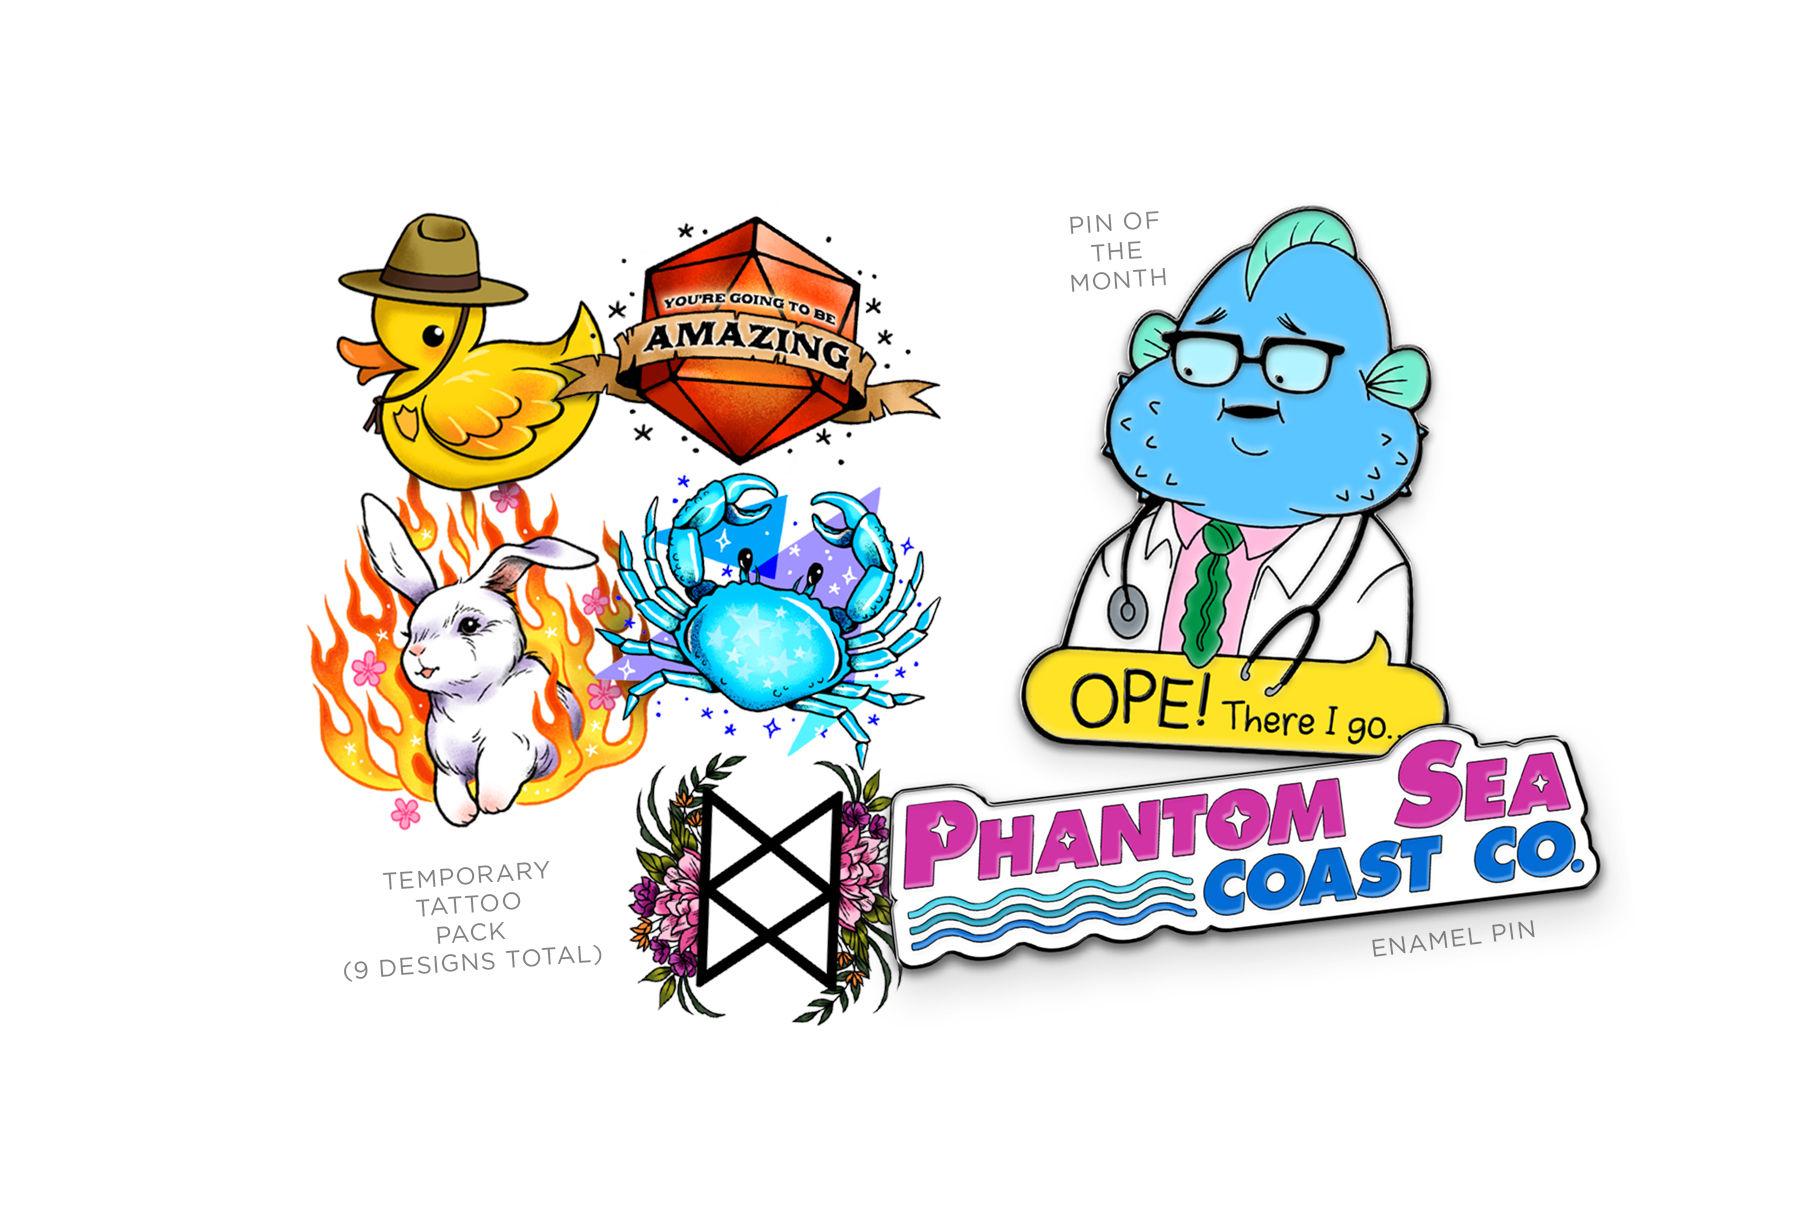 """On the left are five temporary tattoos: A duck wearing a forest ranger hat; a d20 that says, """"You're going to be AMAZING.""""; a rabbit with flames around it; a blue crab with a blue and a purple triangle; and the BoB sigil with flowers. To the right are two enamel pins. The top right is a pin of Dr. Shaq with a puffer fish head saying, """"OPE! There I go…"""" Below that is the Phantom Sea Coast Co. logo in purple and blue."""